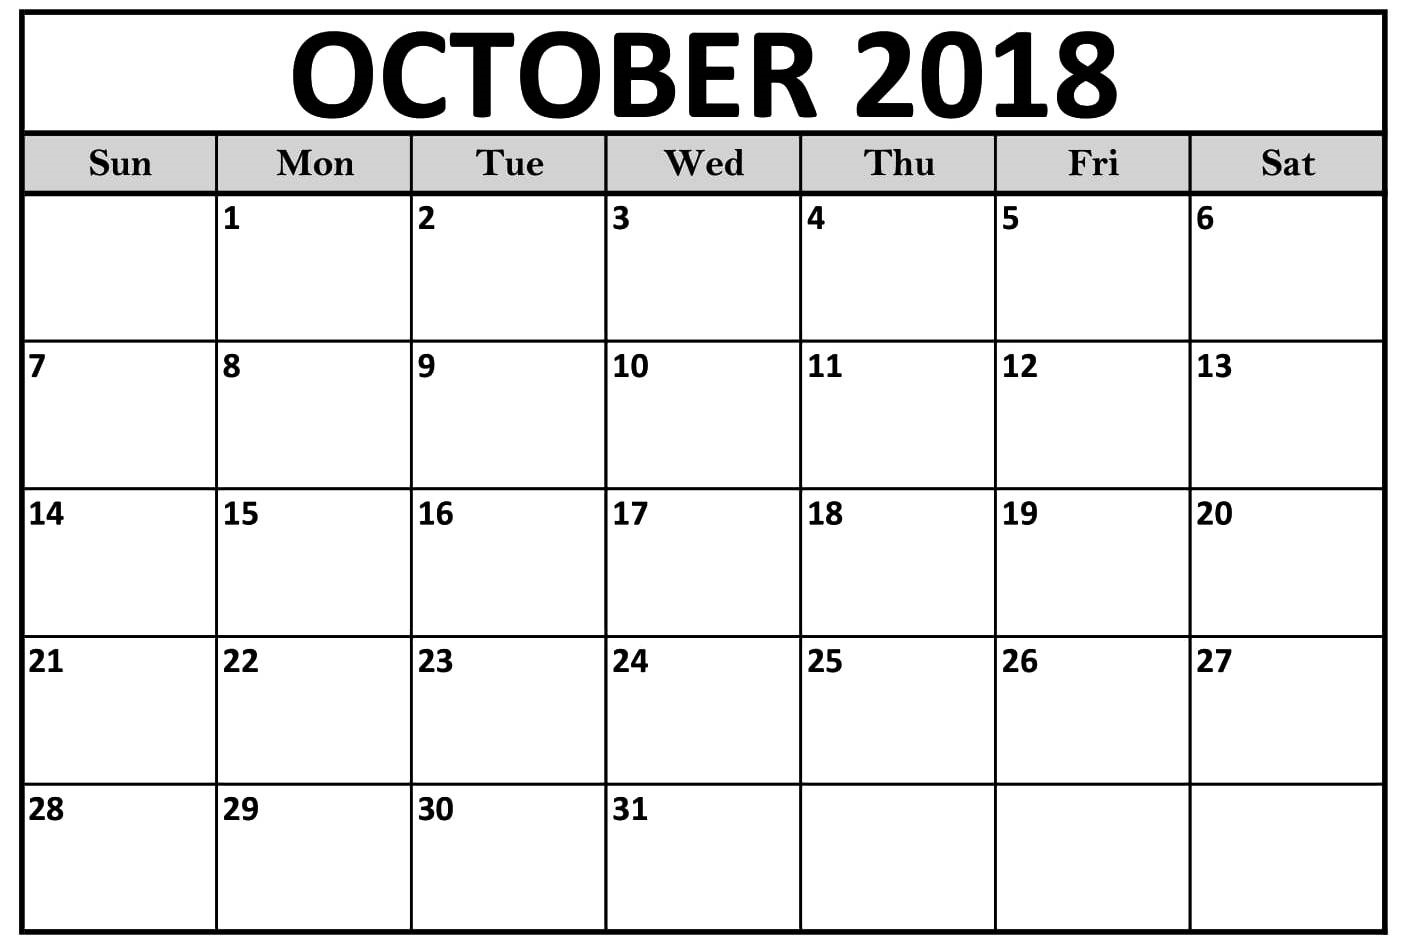 october 2018 calendar editable template free printable calendar Free October 2018 Calendar Word Document erdferdf